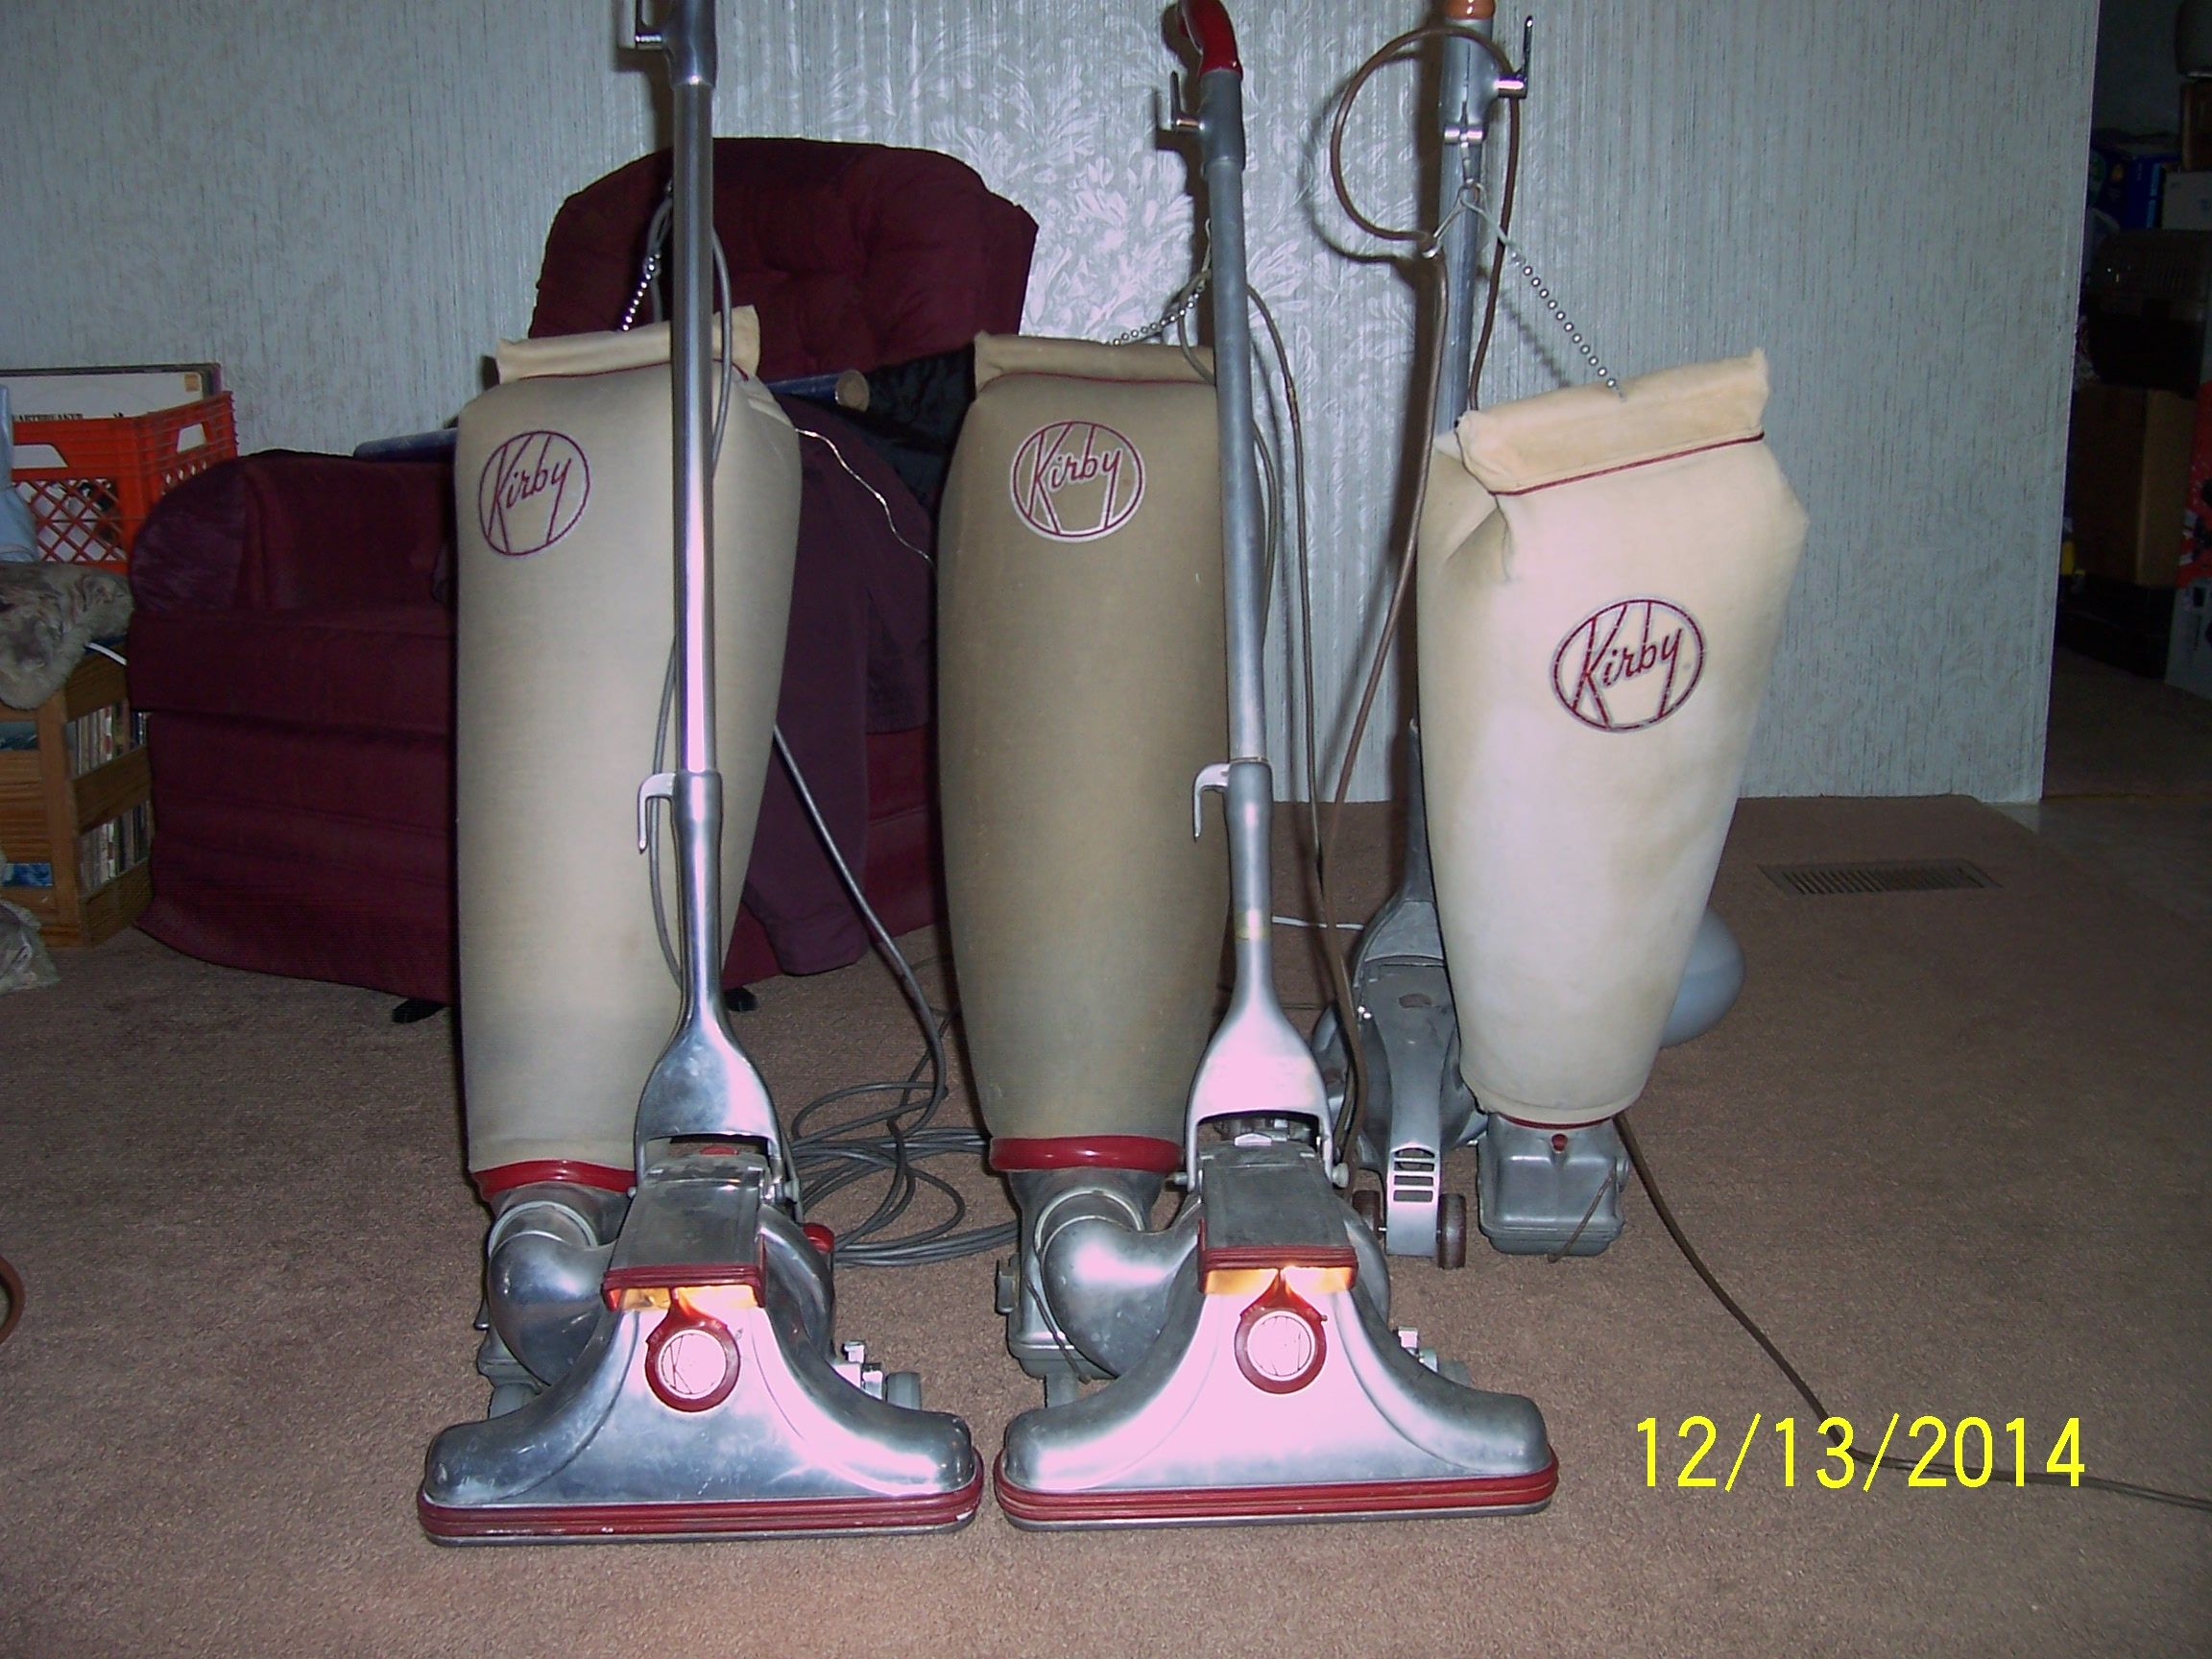 Three 500 Series Kirbys From The Past Still Working Like They Did New Kirby Vacuum Vintage Appliances Vintage Vacuum Cleaner